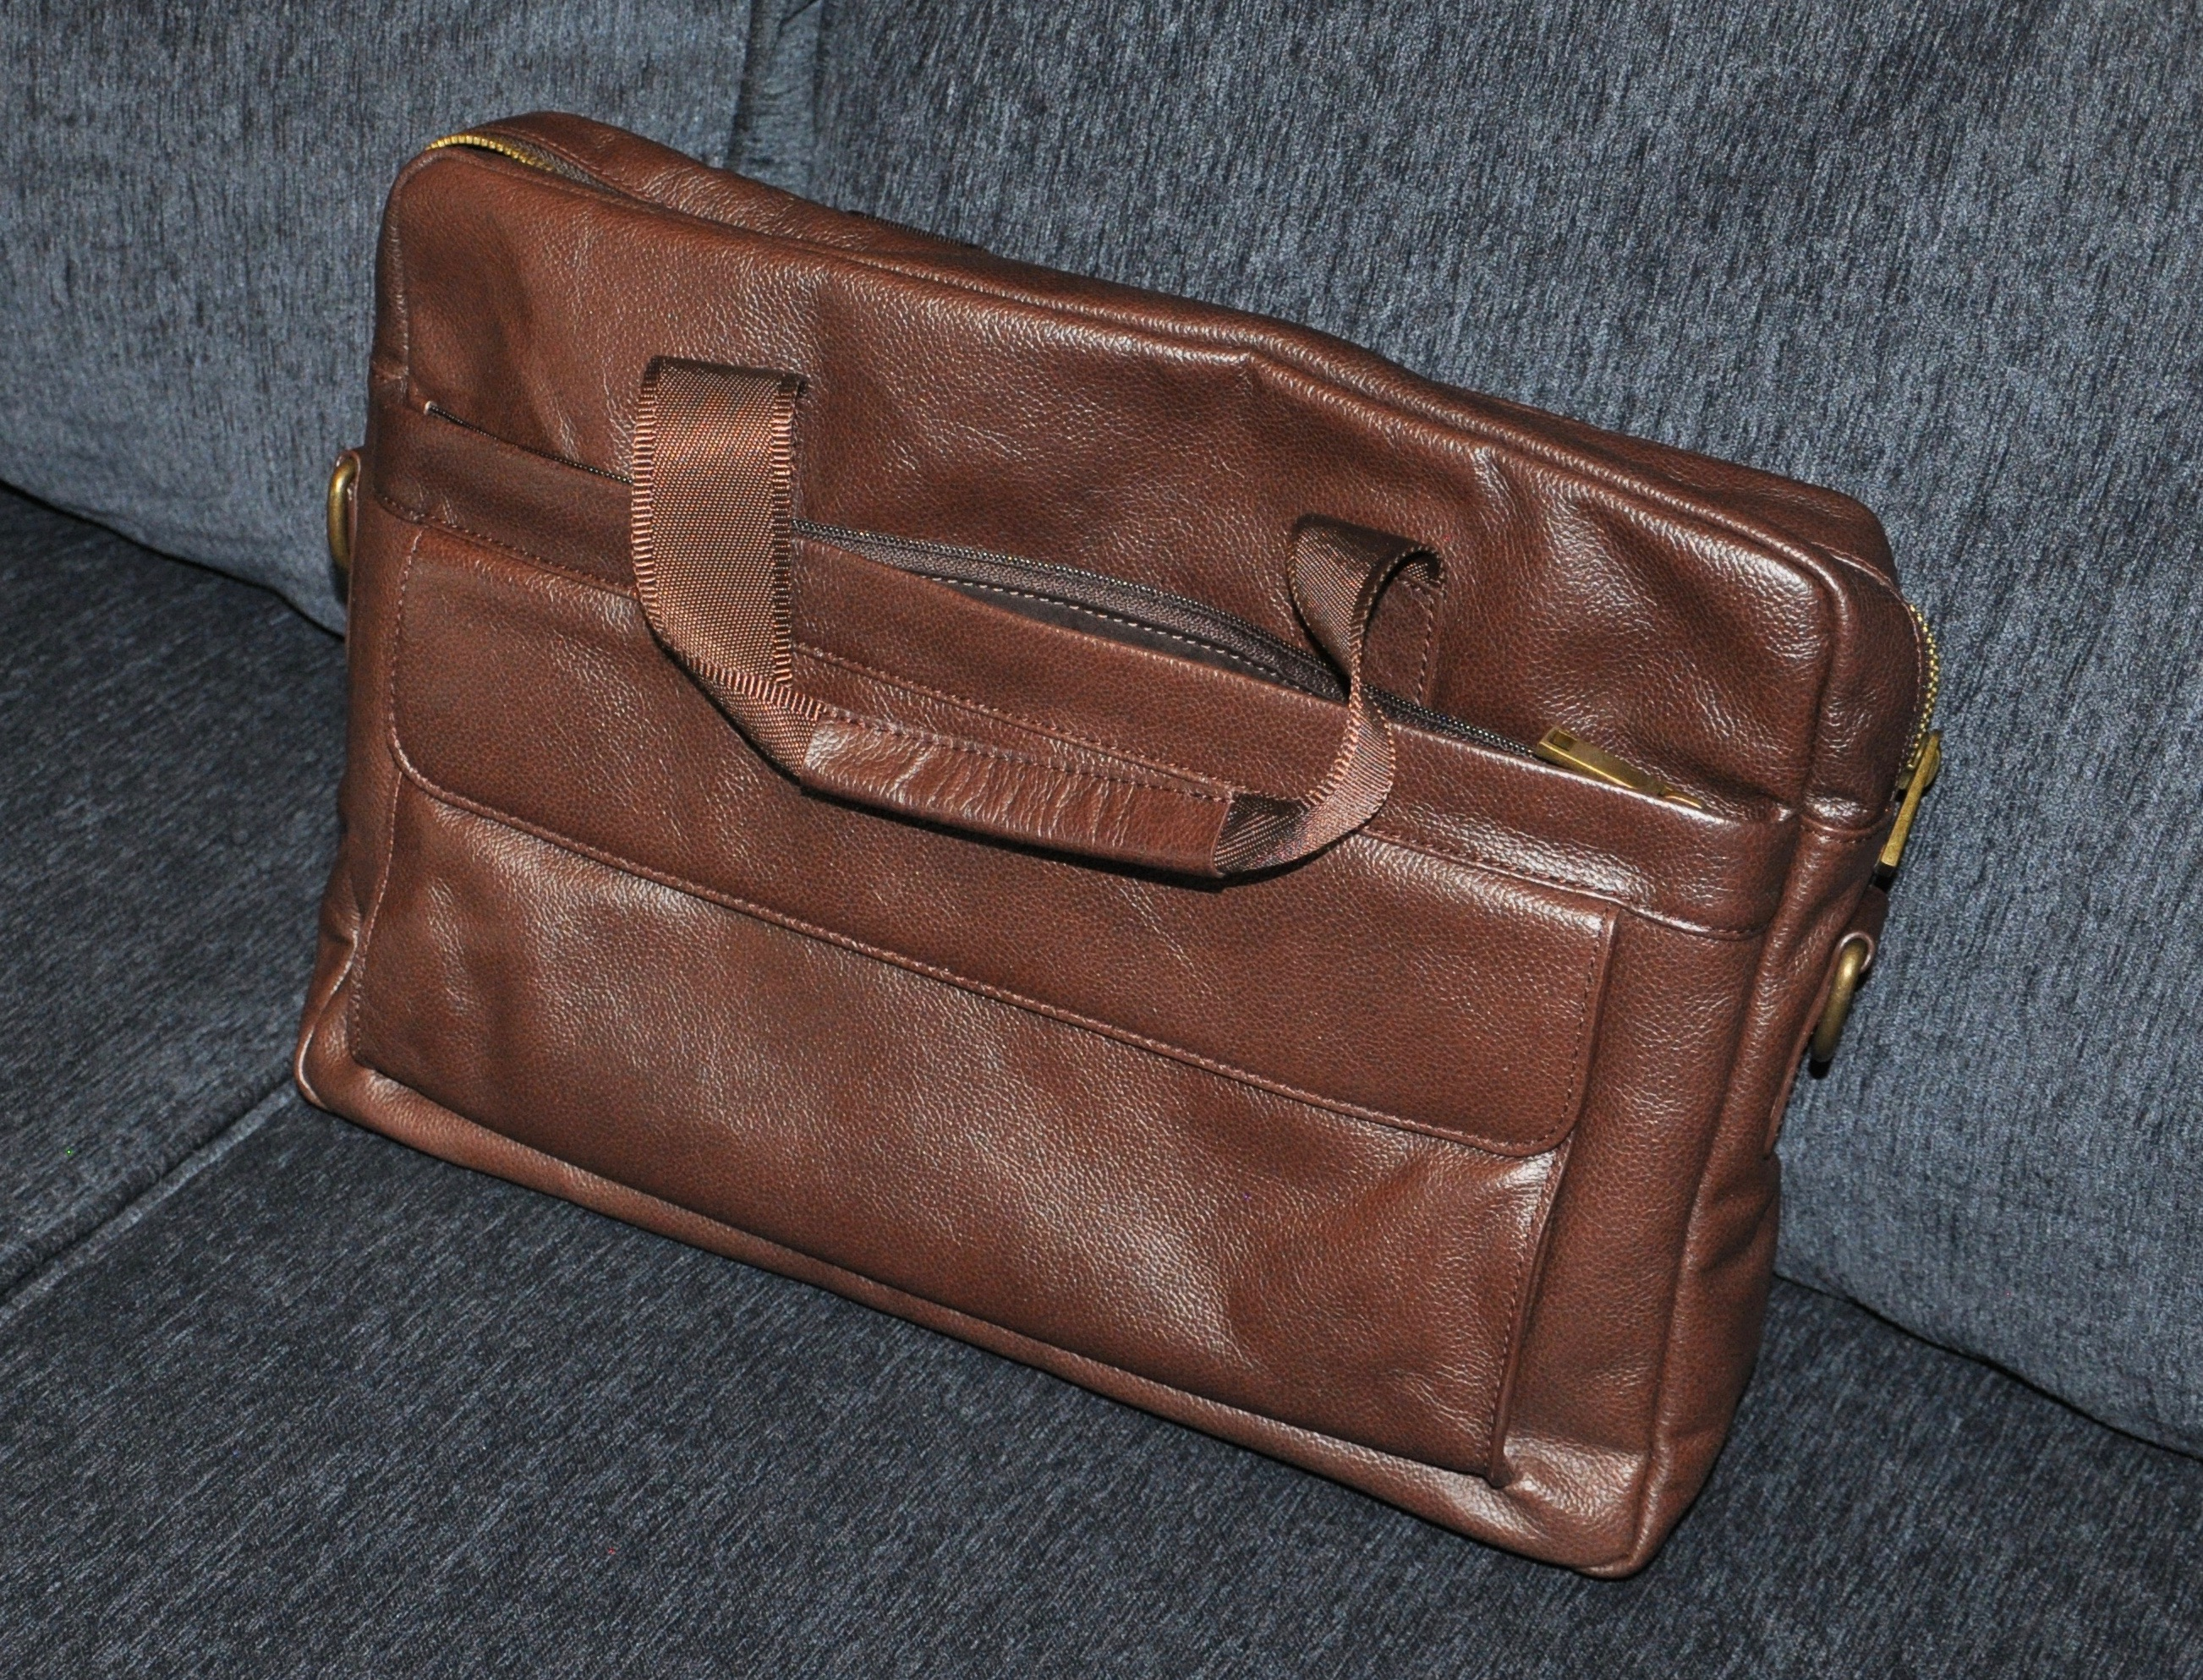 Daniels NYC Leather Briefcase review – The Gadgeteer